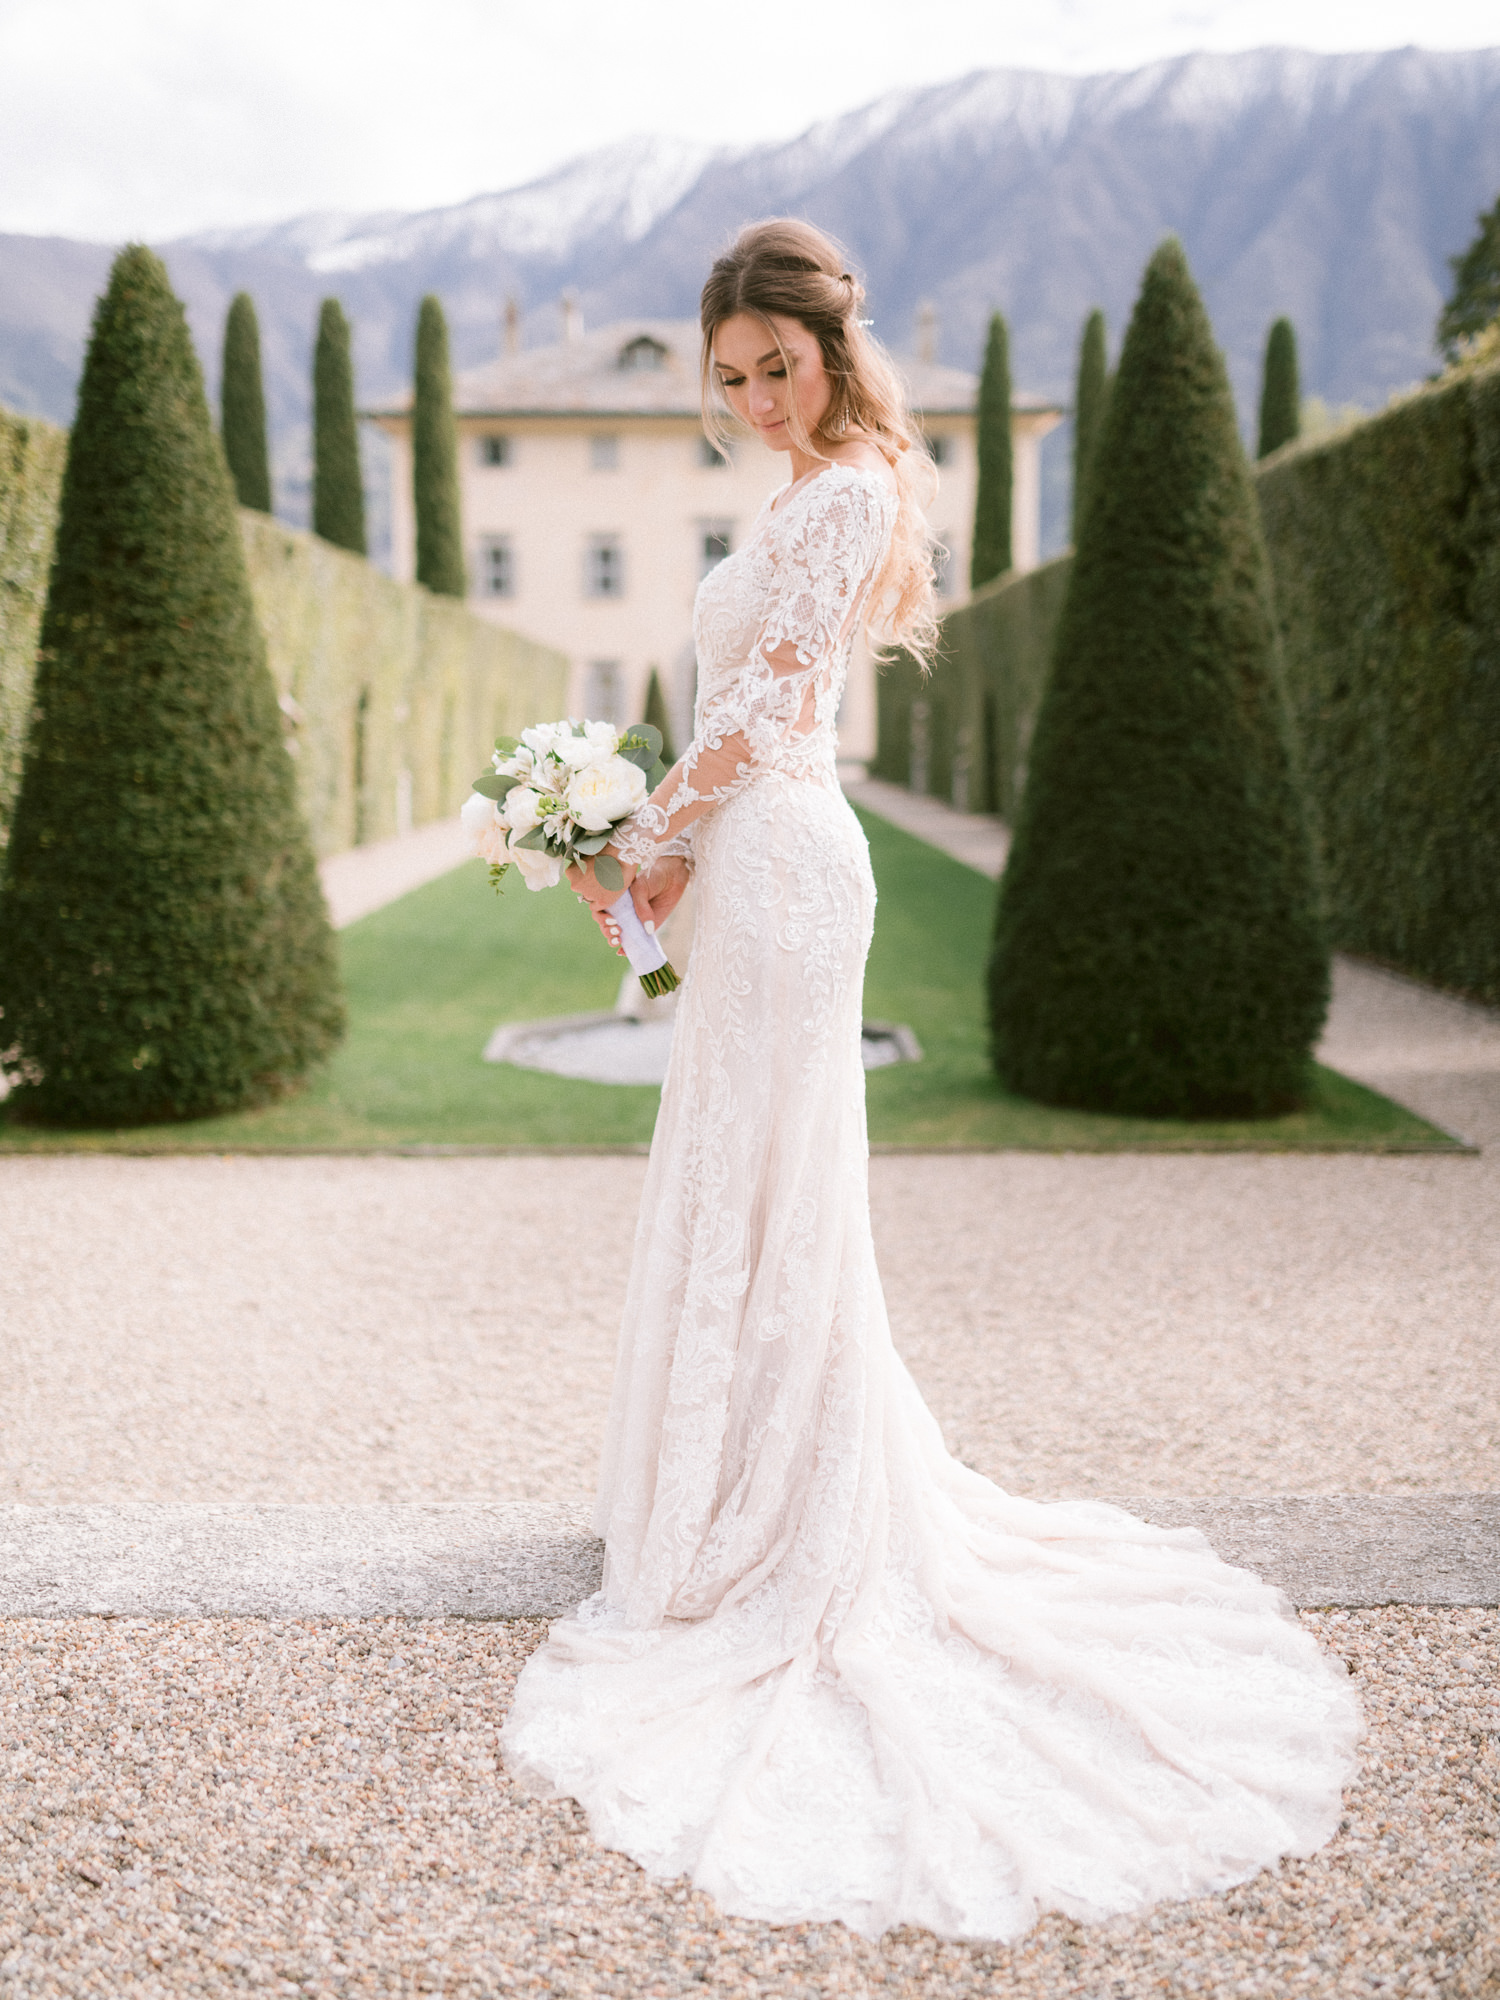 Bride in long sleeve gown with train in front of villa - photo by Gianluca Adovasio Photography